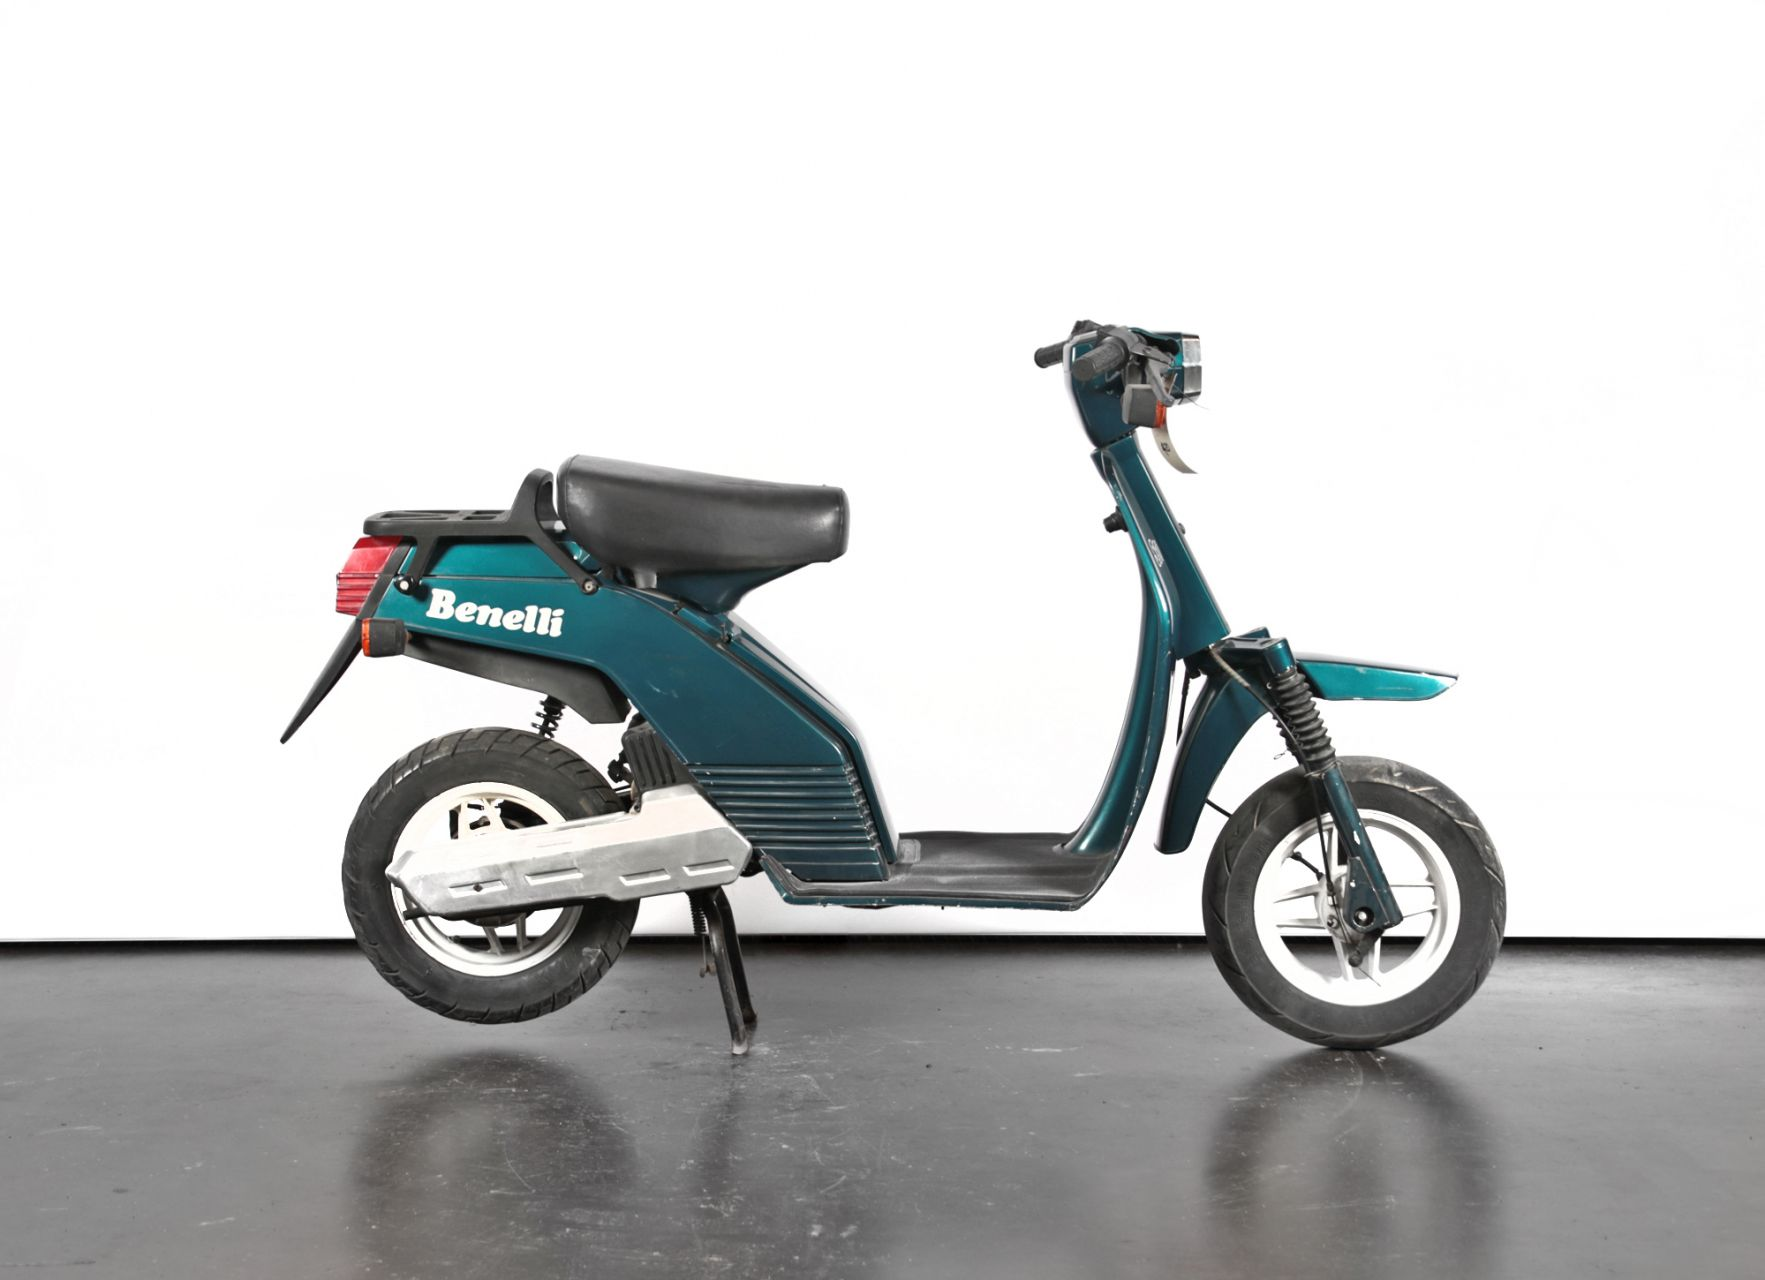 1992 Benelli SCOOTER S50 42920